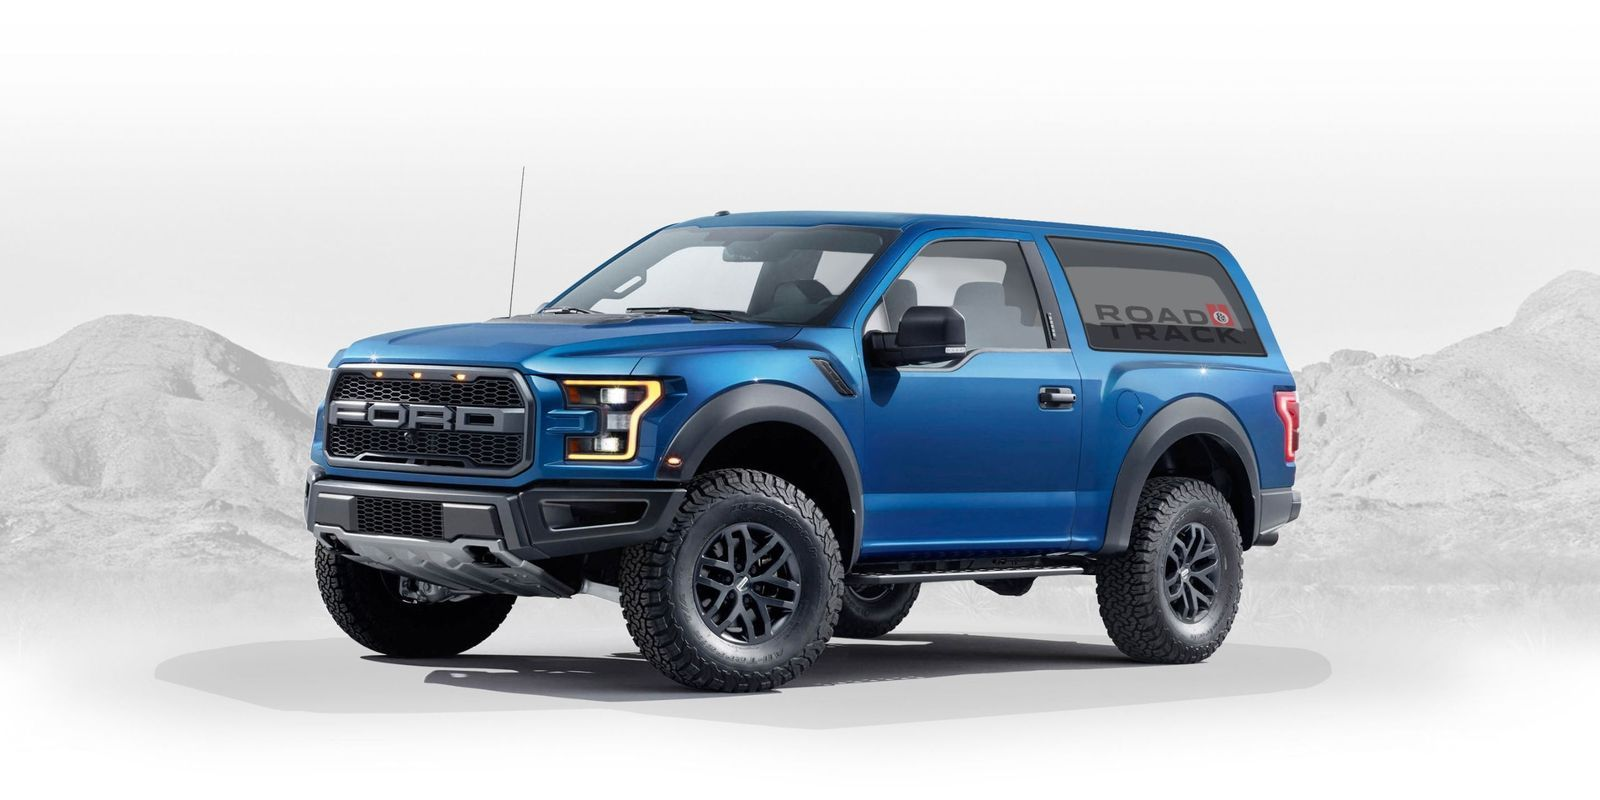 Confirmed The New Ford Bronco Is Coming For 2020 Ford Bronco Concept Ford Bronco New Bronco